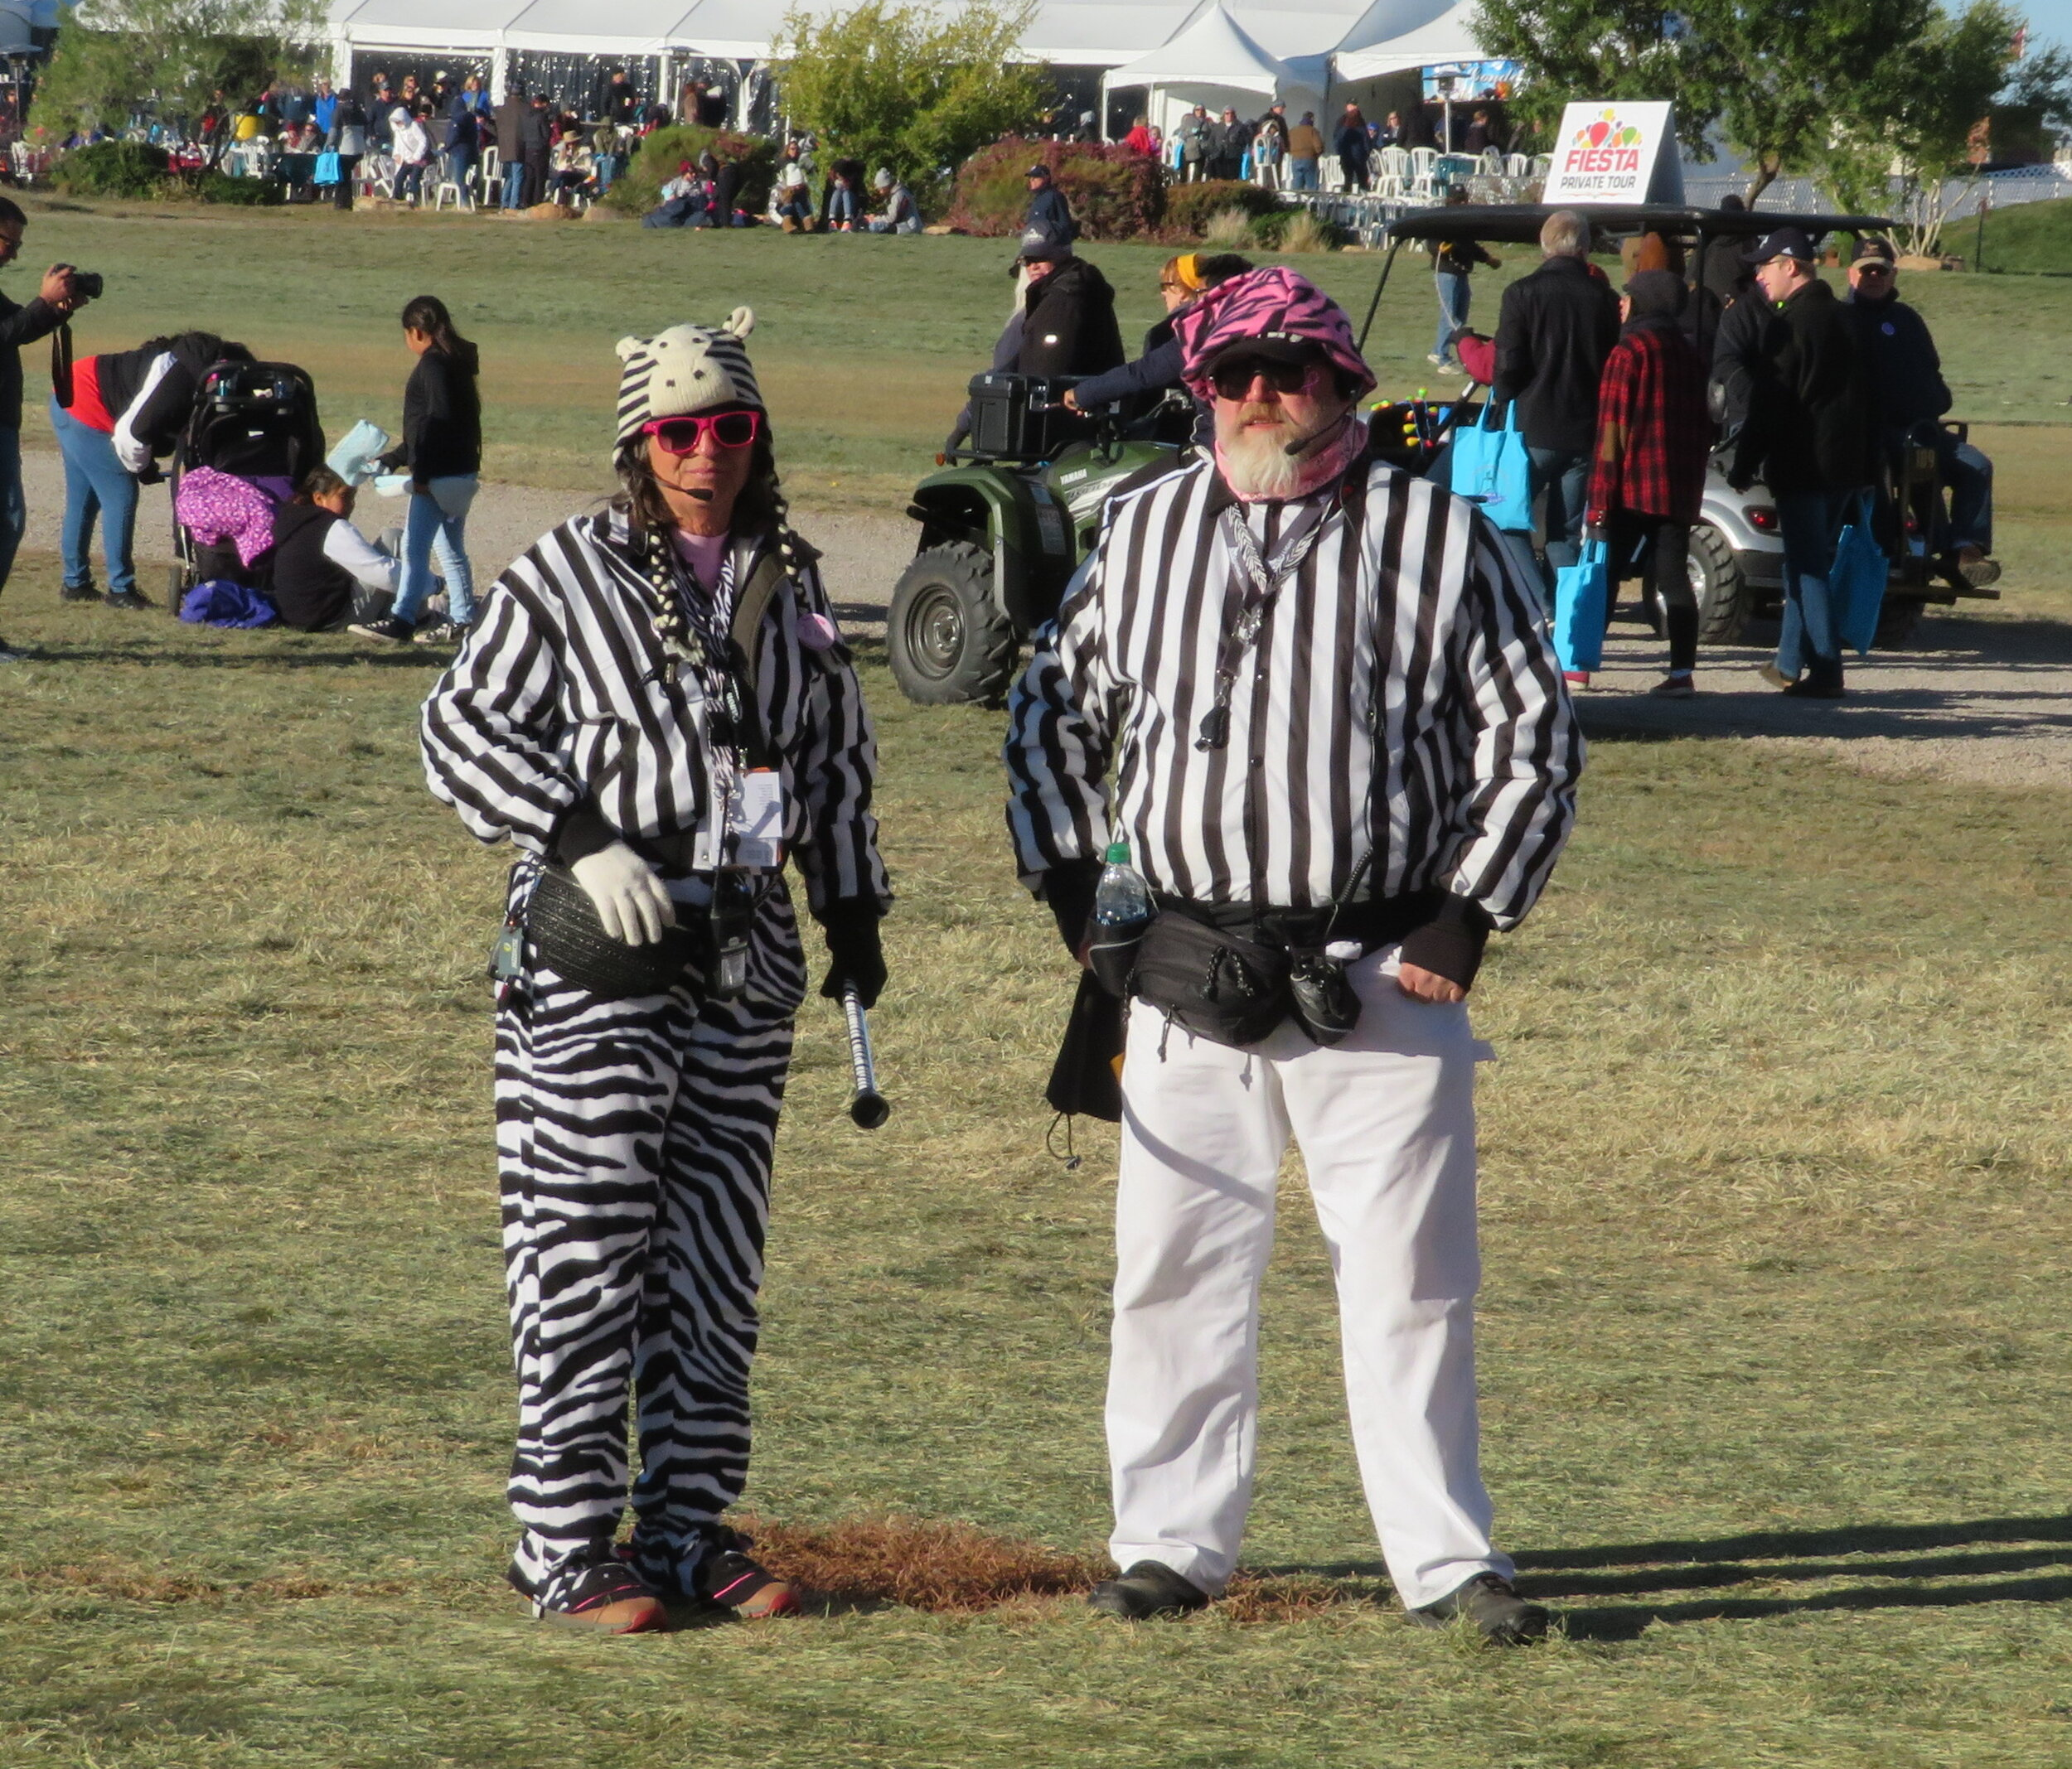 balloon-special-shapes_zebras dressed in stripes.JPG